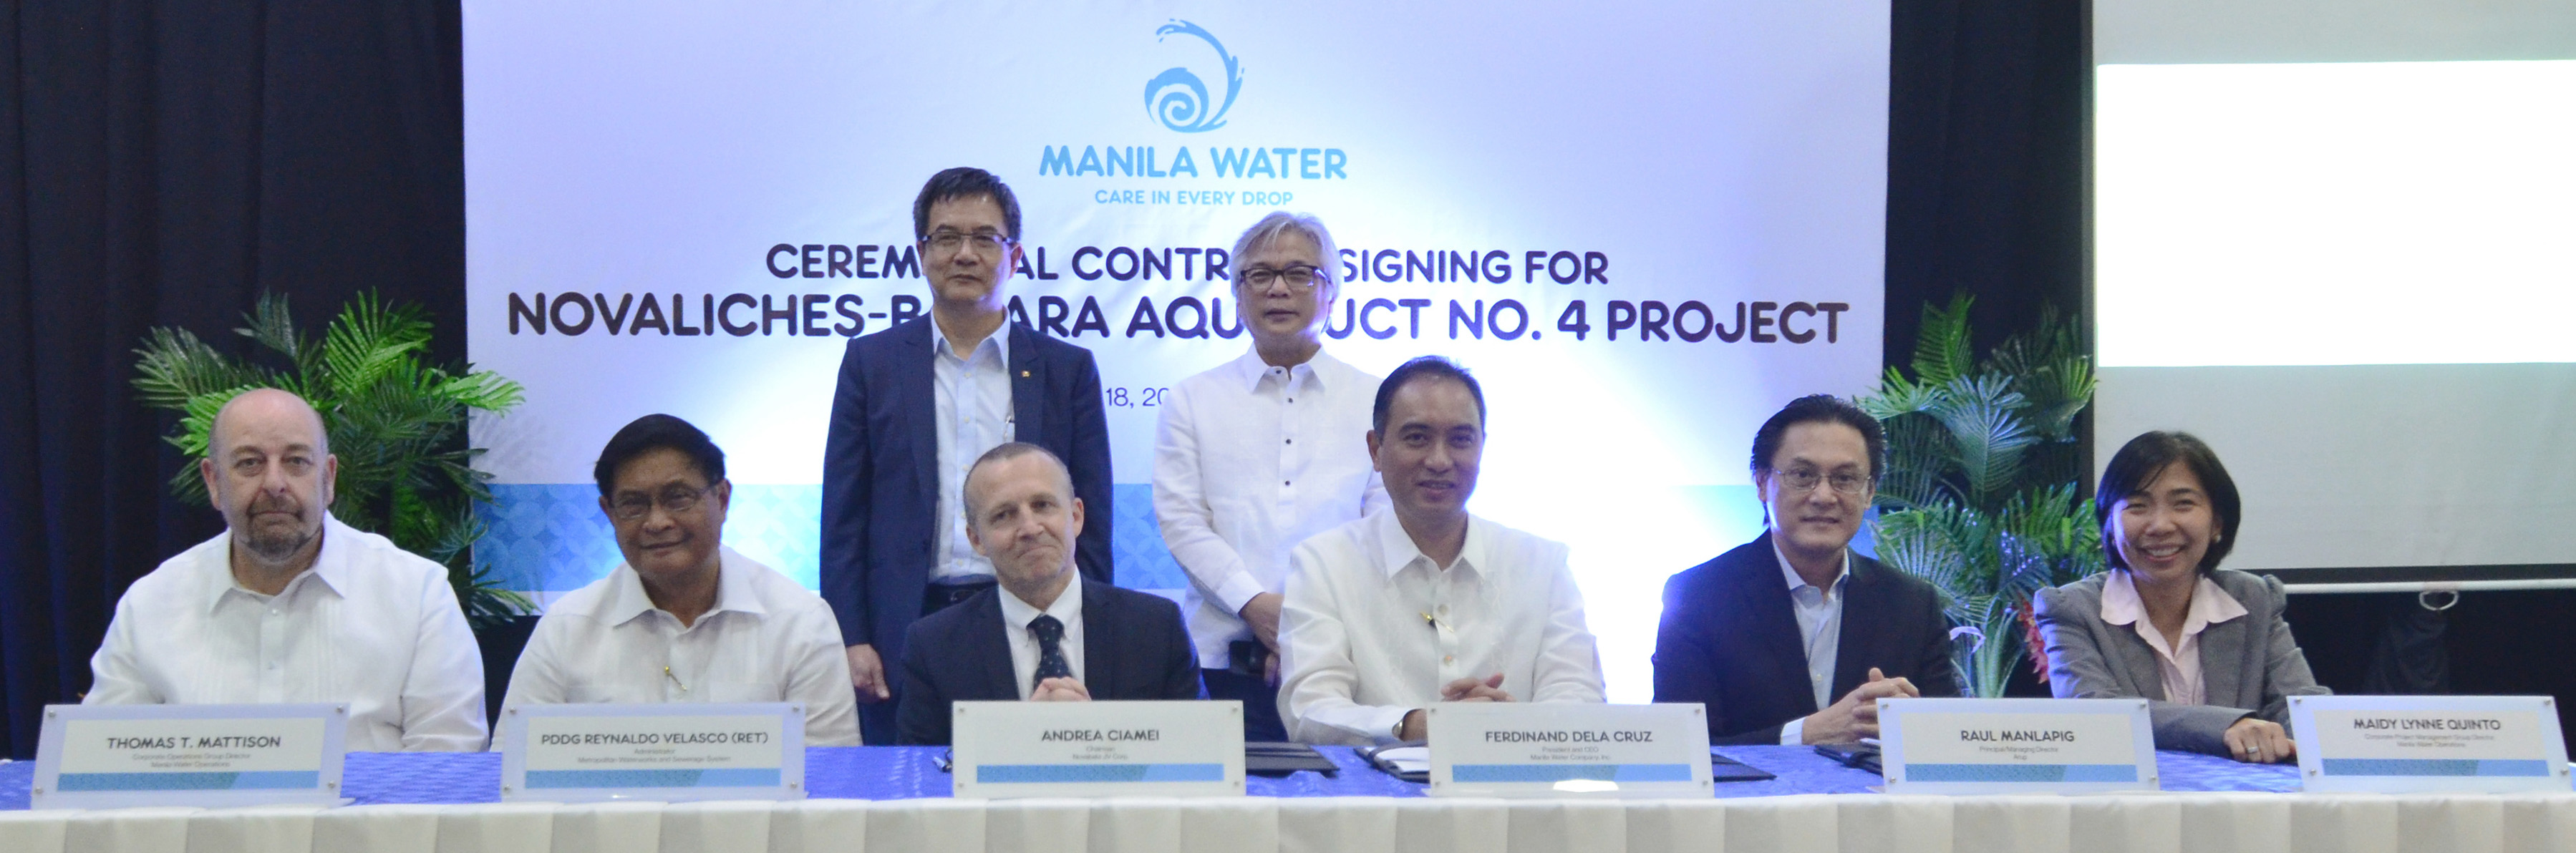 First Balfour, Manila Water sign P5.3-B aqueduct project